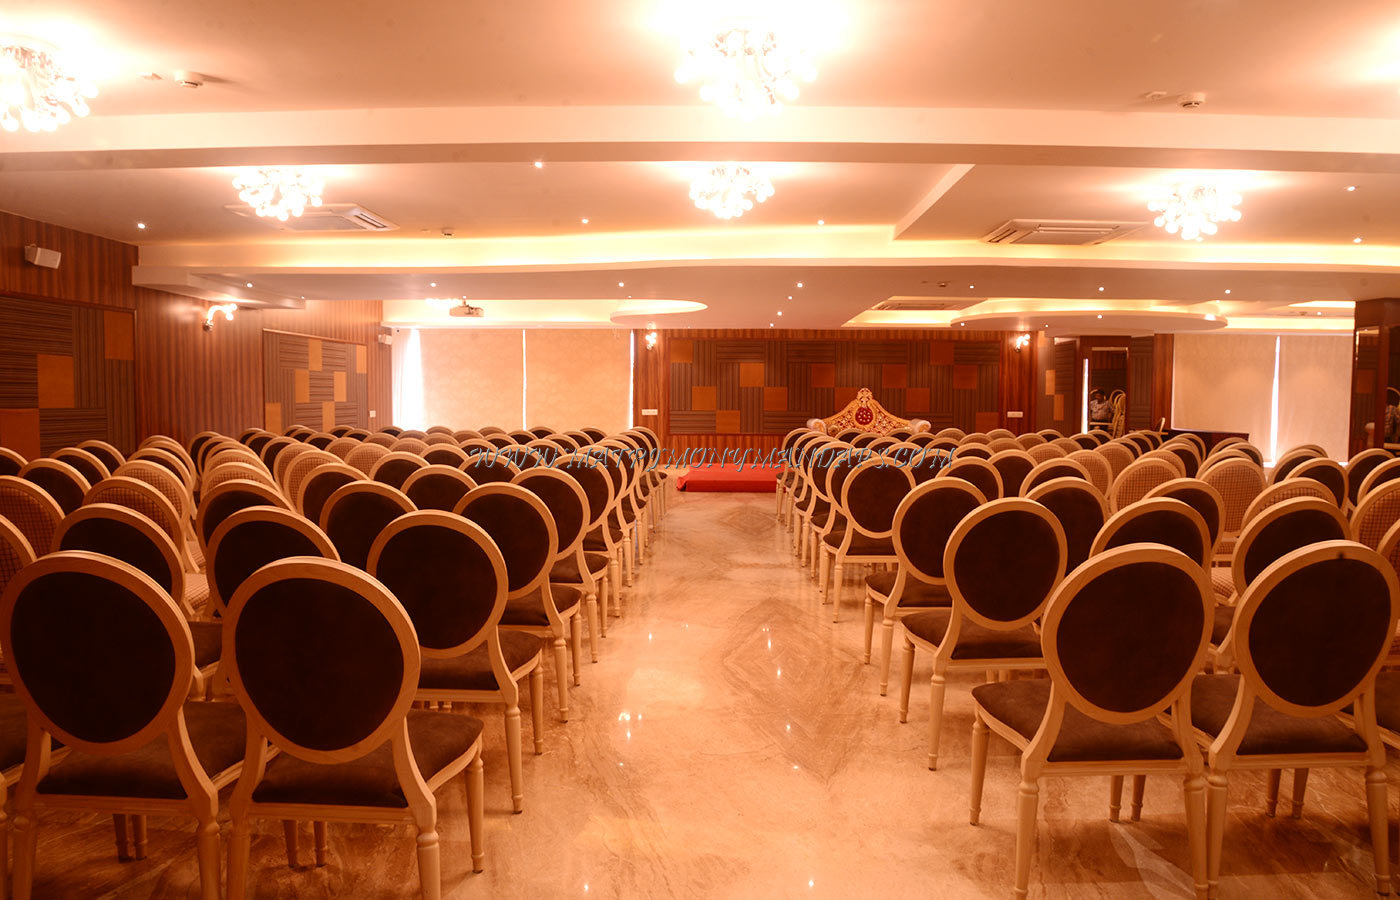 Find the availability of the JK Hotels Krishna Hall (A/C) in Saibaba Colony, Coimbatore and avail special offers